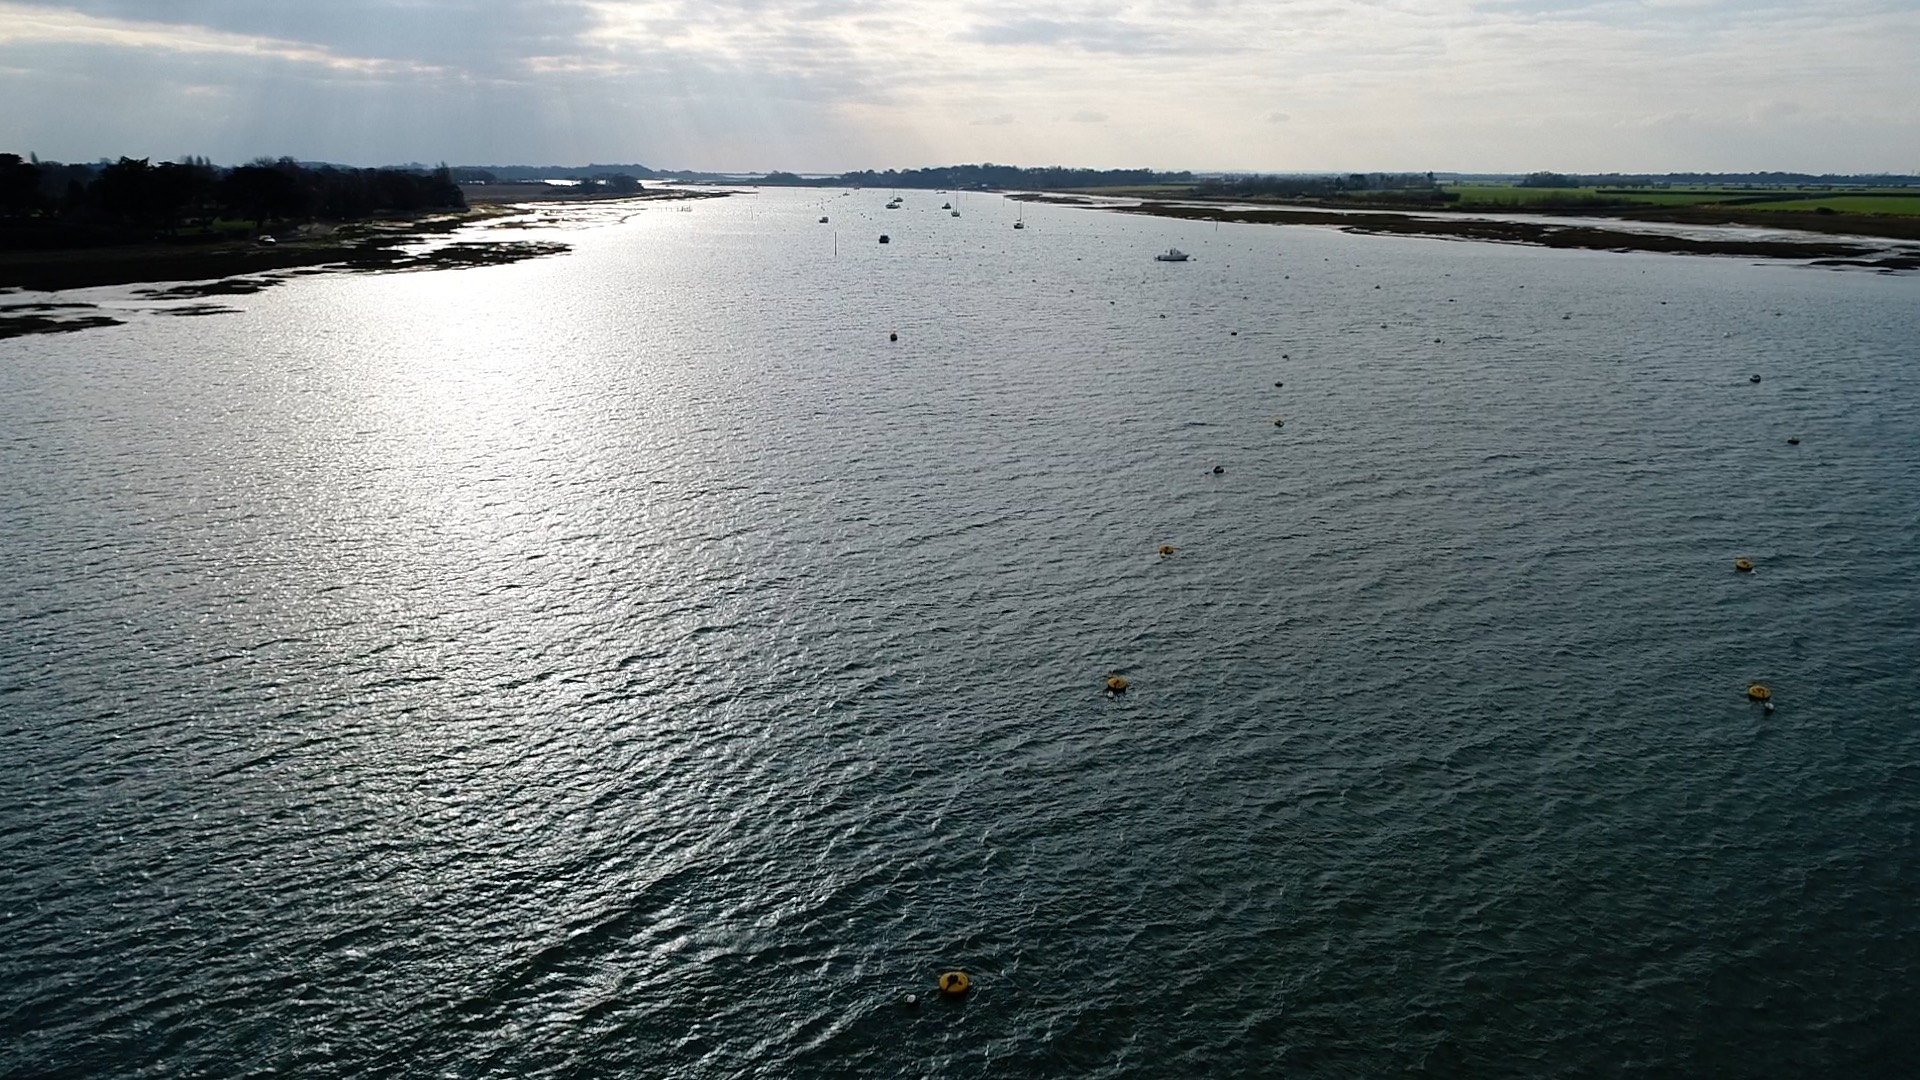 UAVs flight over water